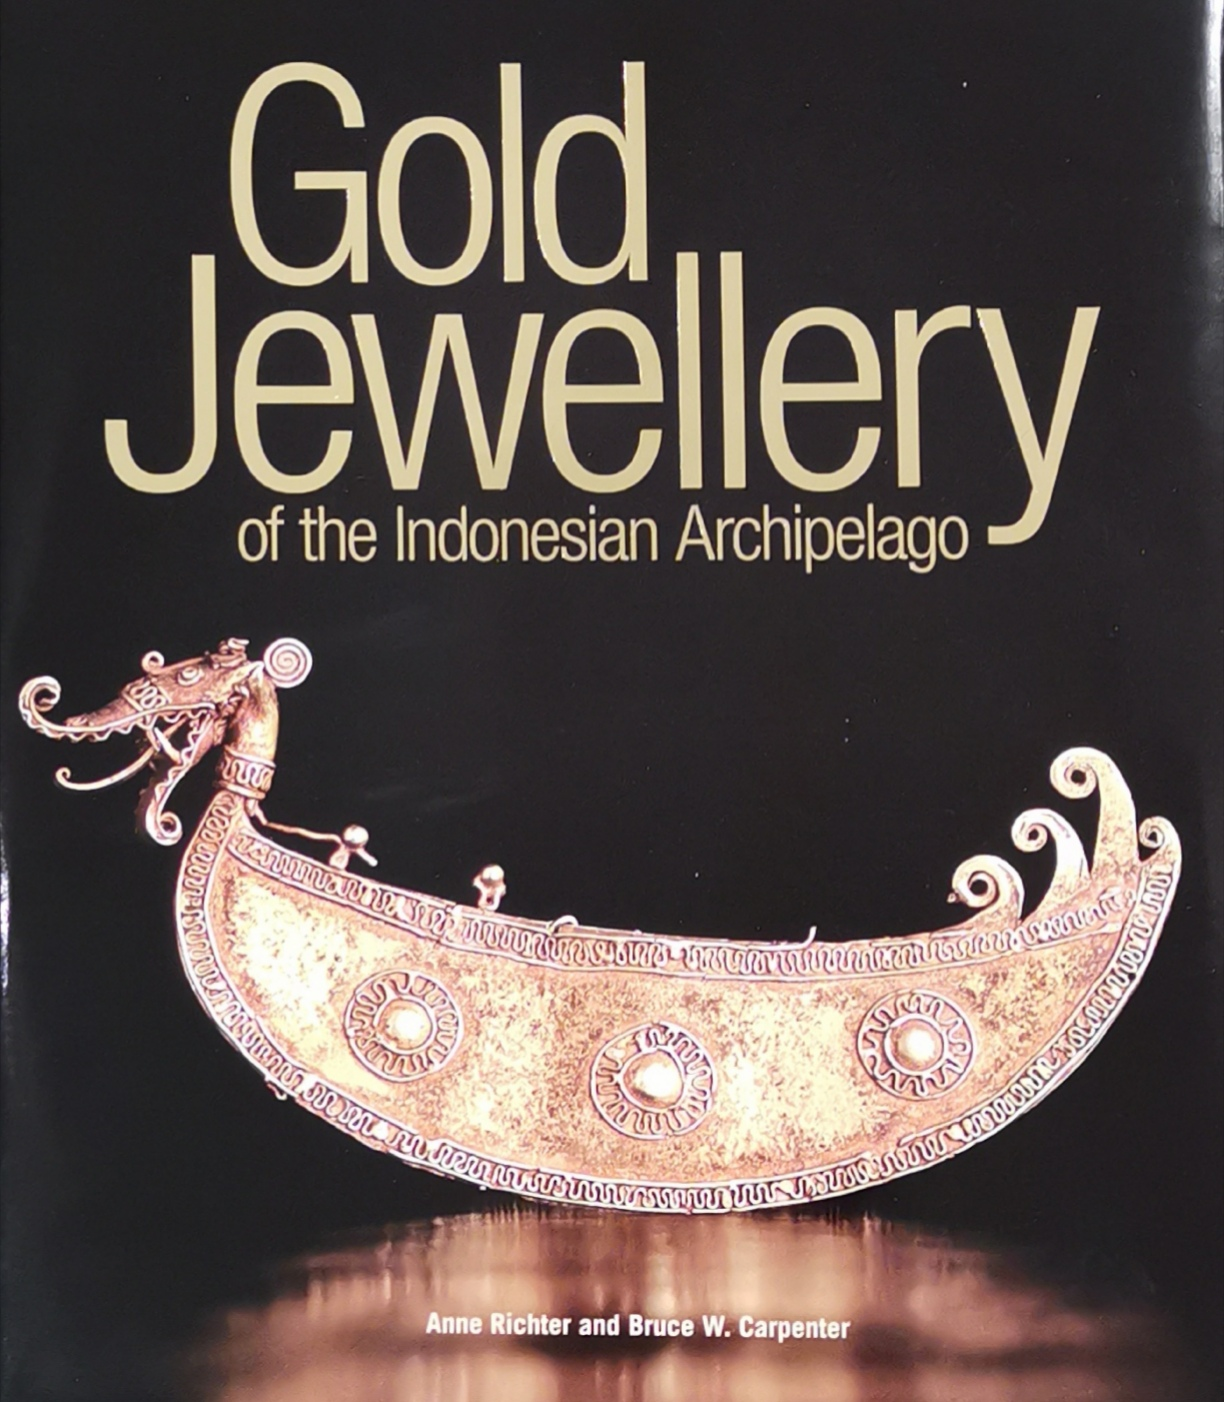 Gold jewellery of the Indonesian Ar